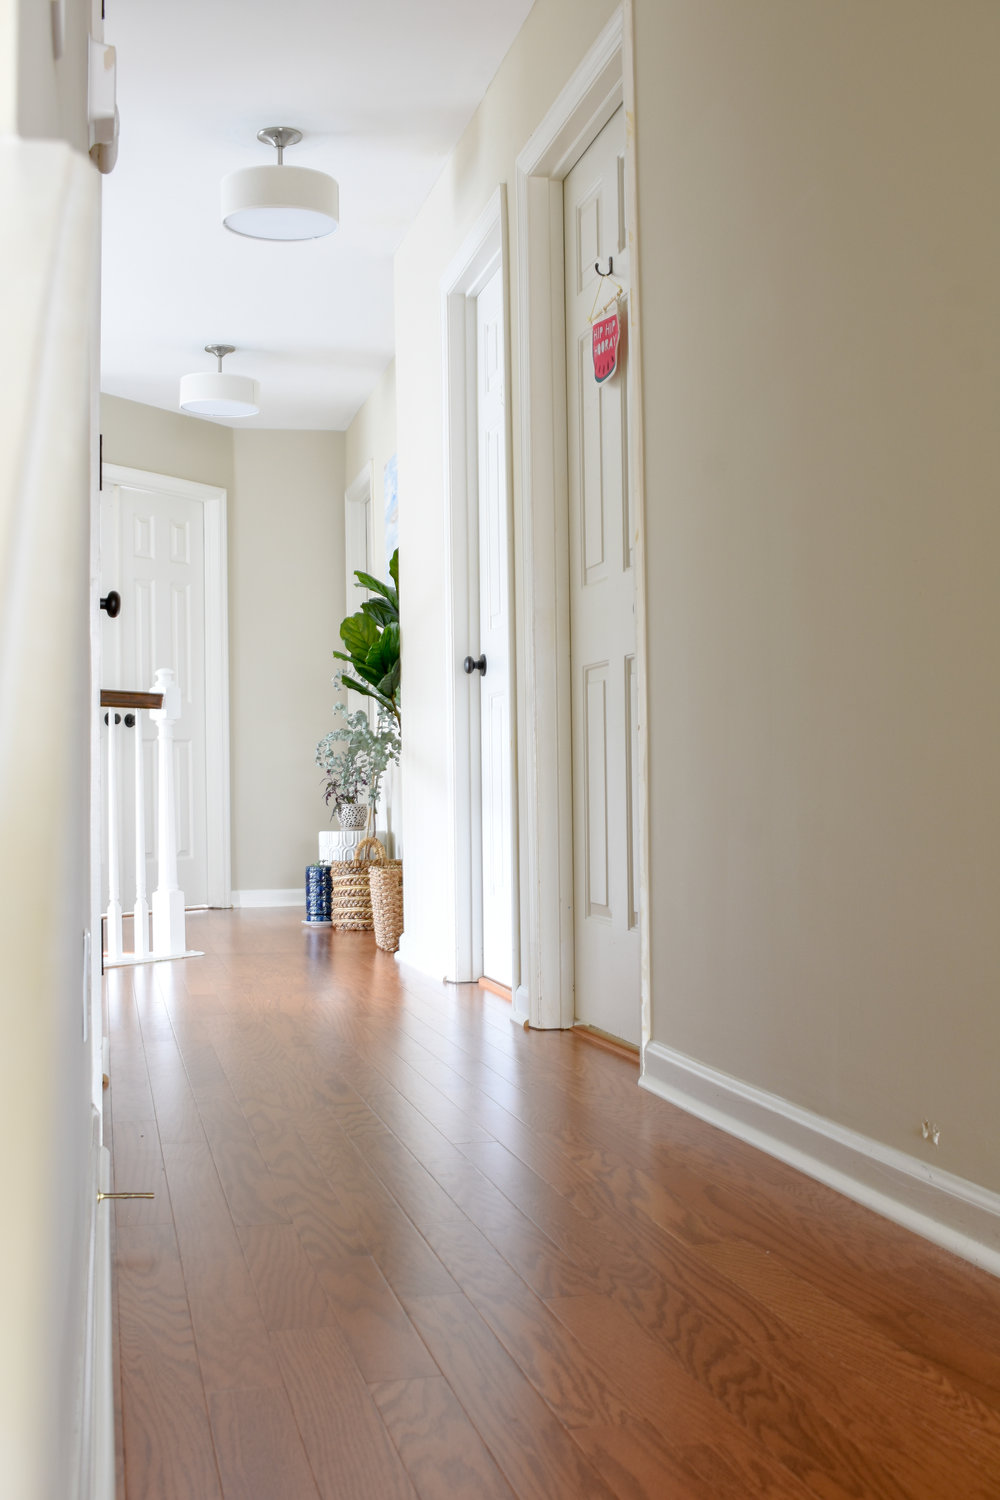 simple hallway updates to improve your home's resale value